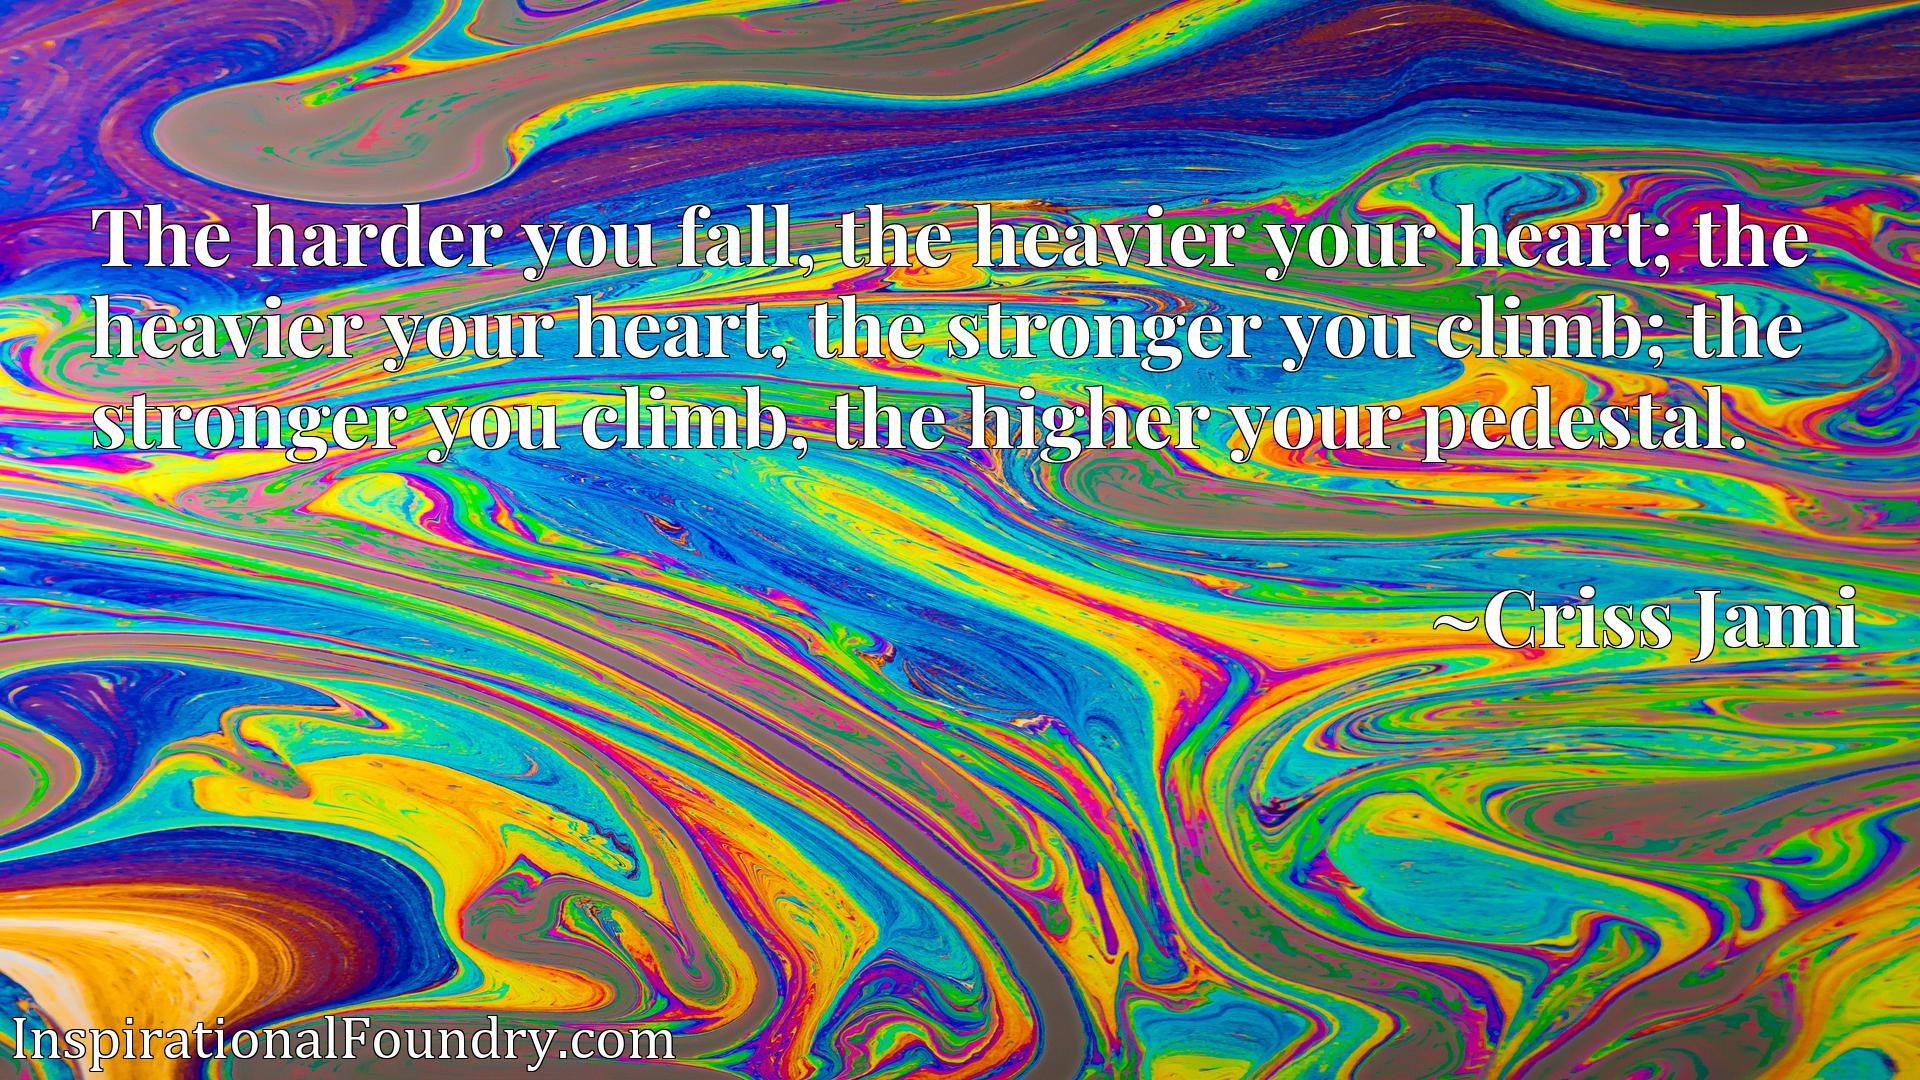 The harder you fall, the heavier your heart; the heavier your heart, the stronger you climb; the stronger you climb, the higher your pedestal.